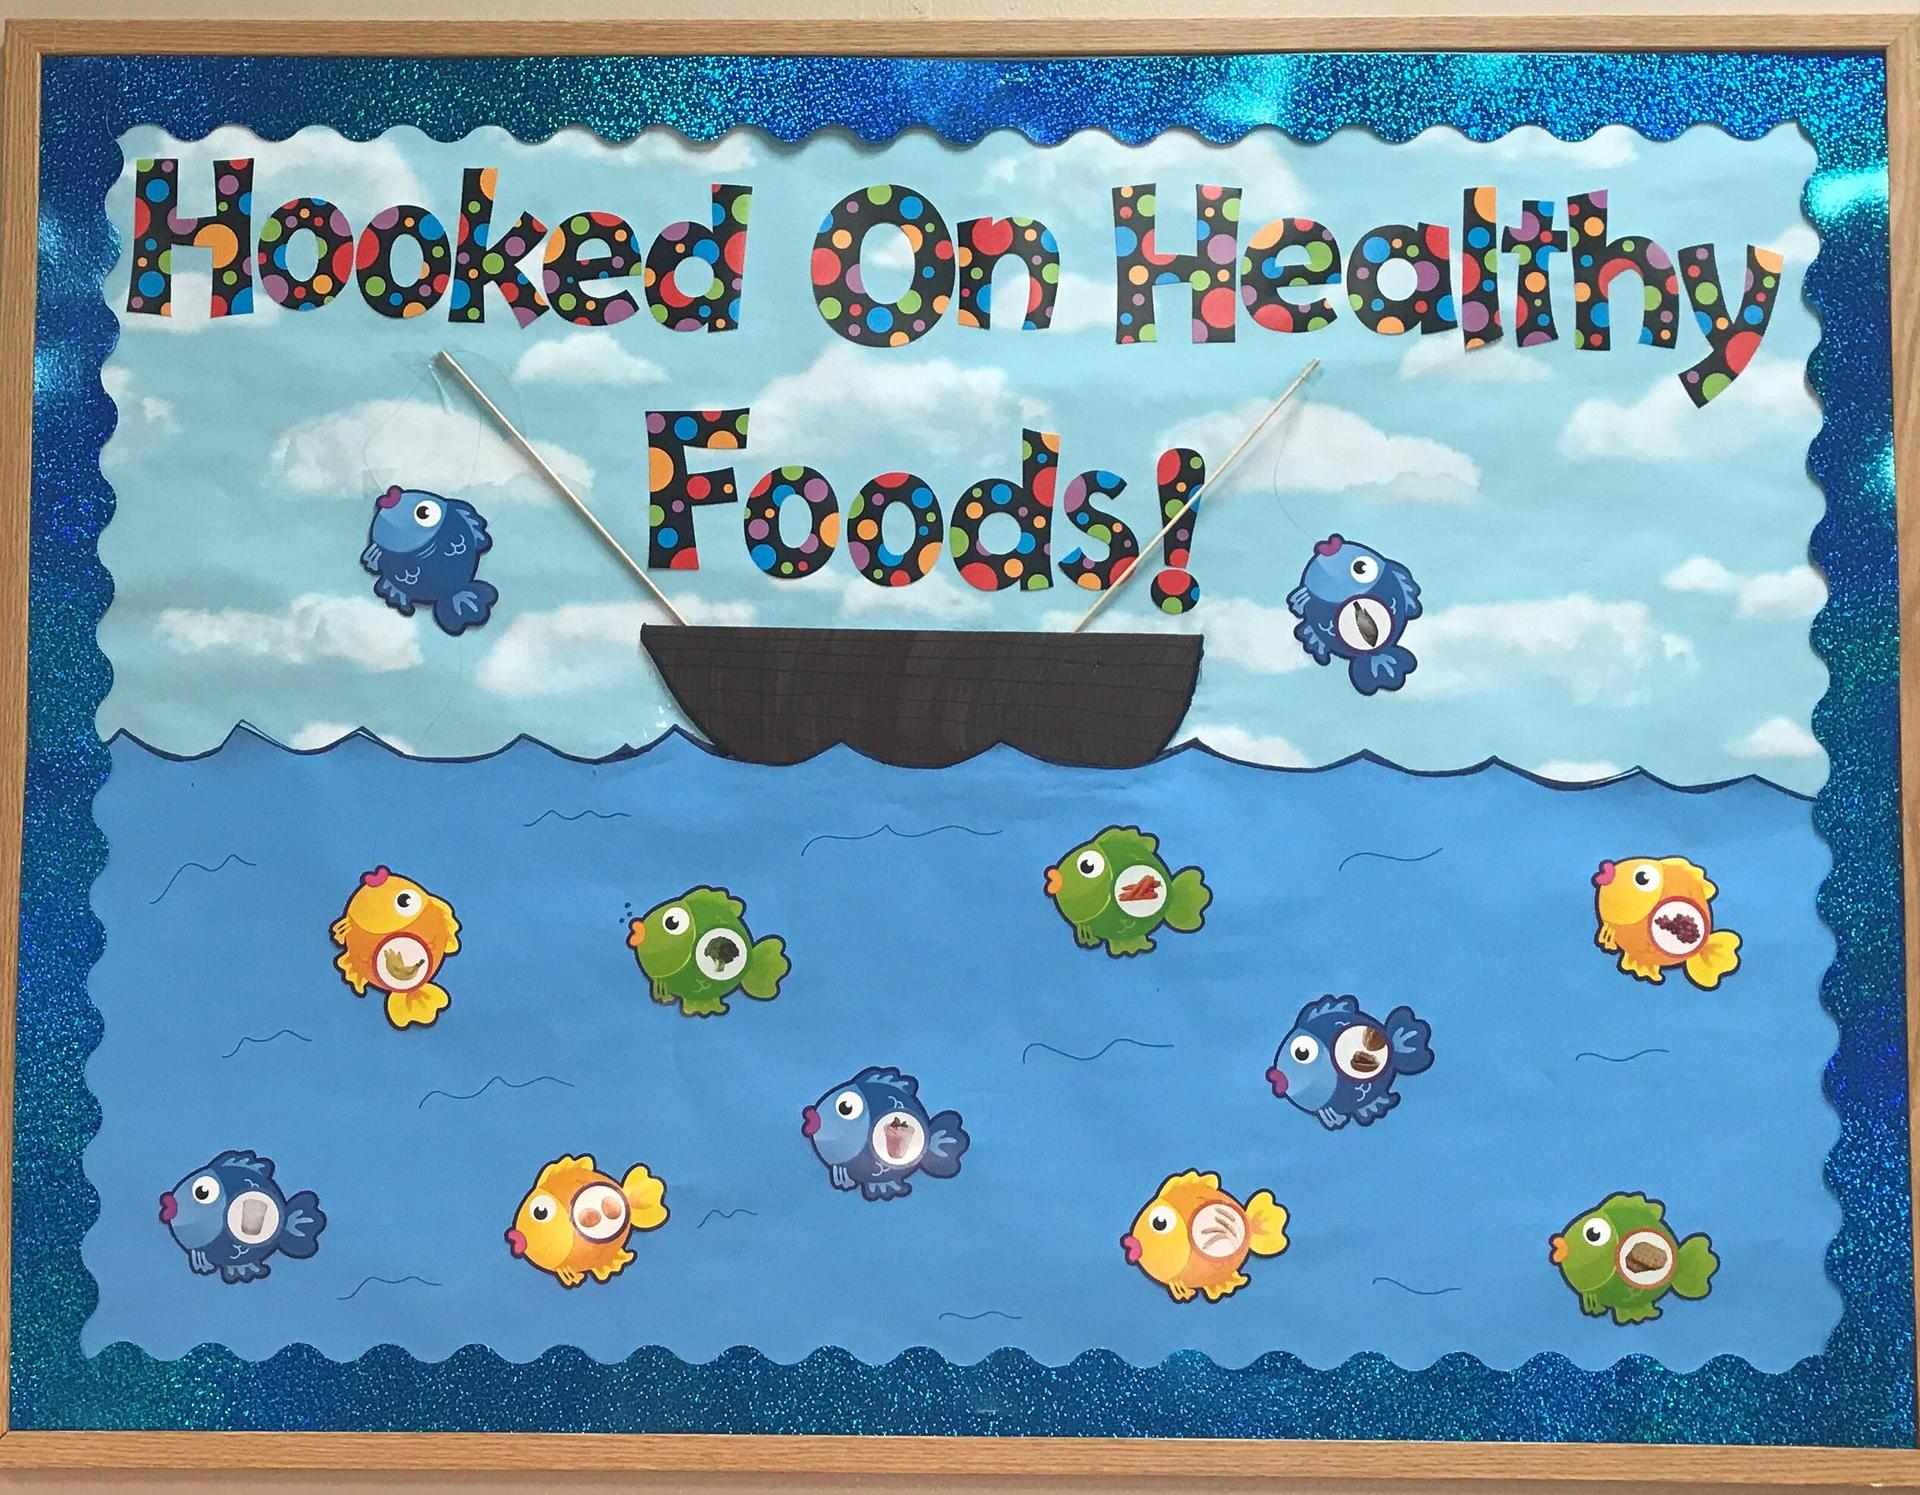 Hooked of Foods bulletin board at Randolph Elementary